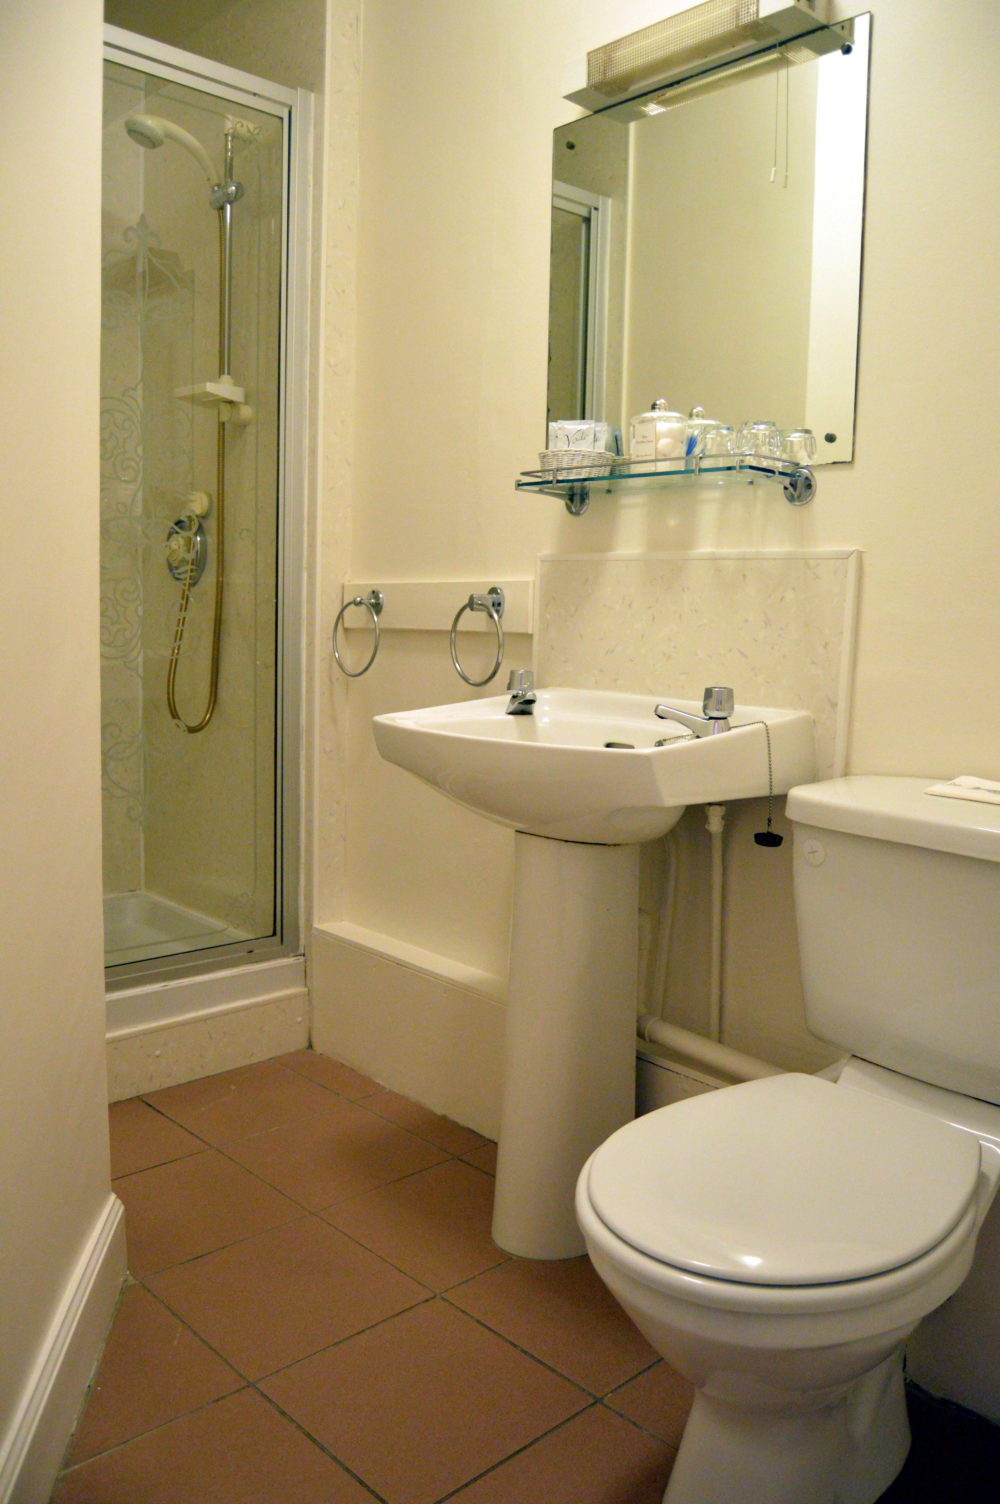 Room 4 Bathroom